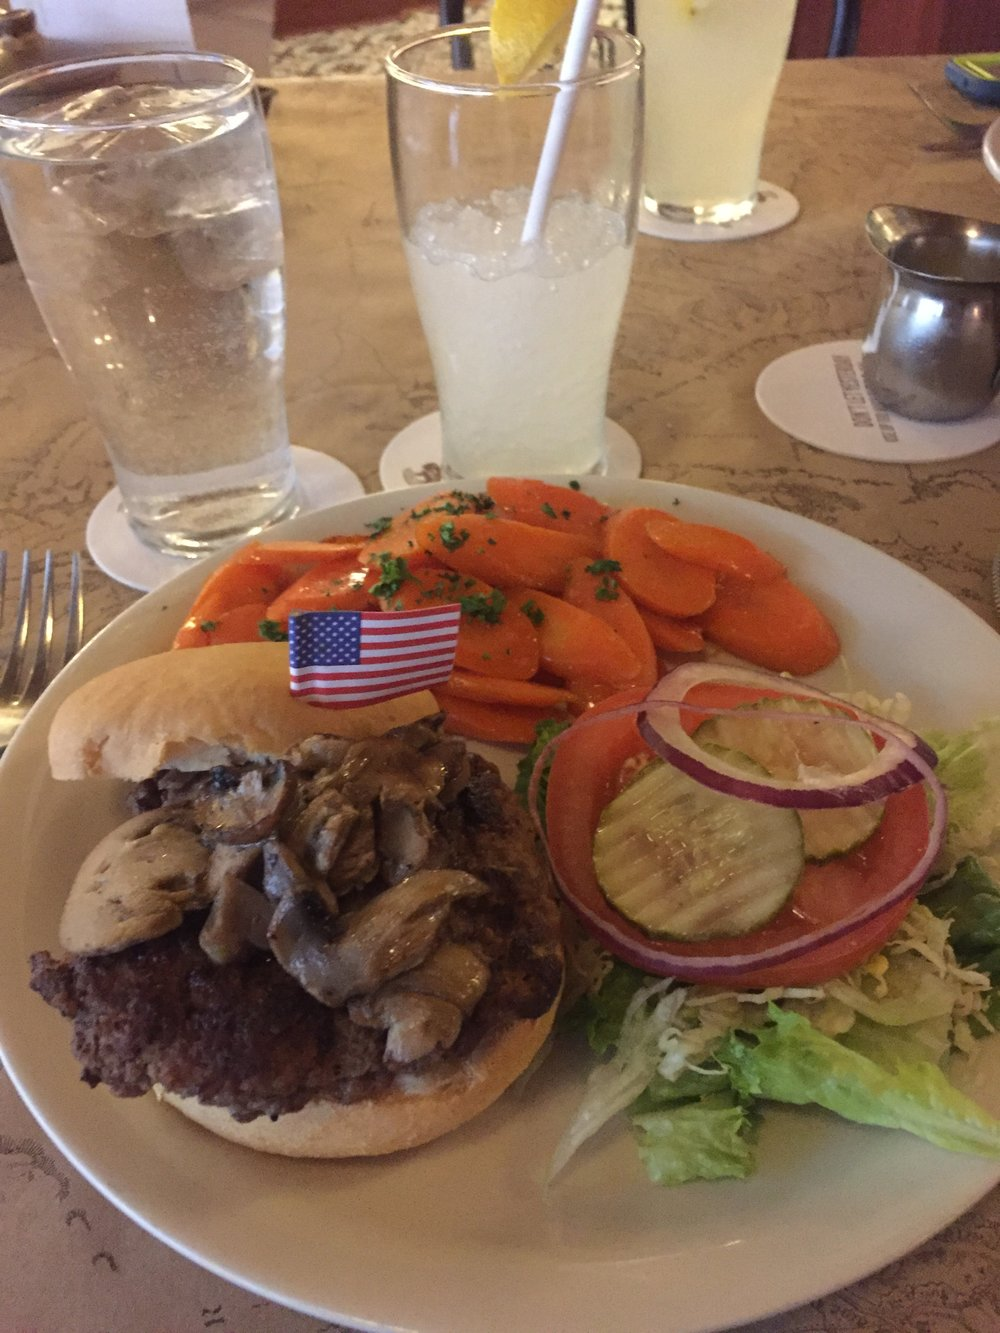 Bison Burger with butter carrots and a gluten-free bun! The lemonade was hand squeezed and I'm sure full of sugar - but that was a treat!